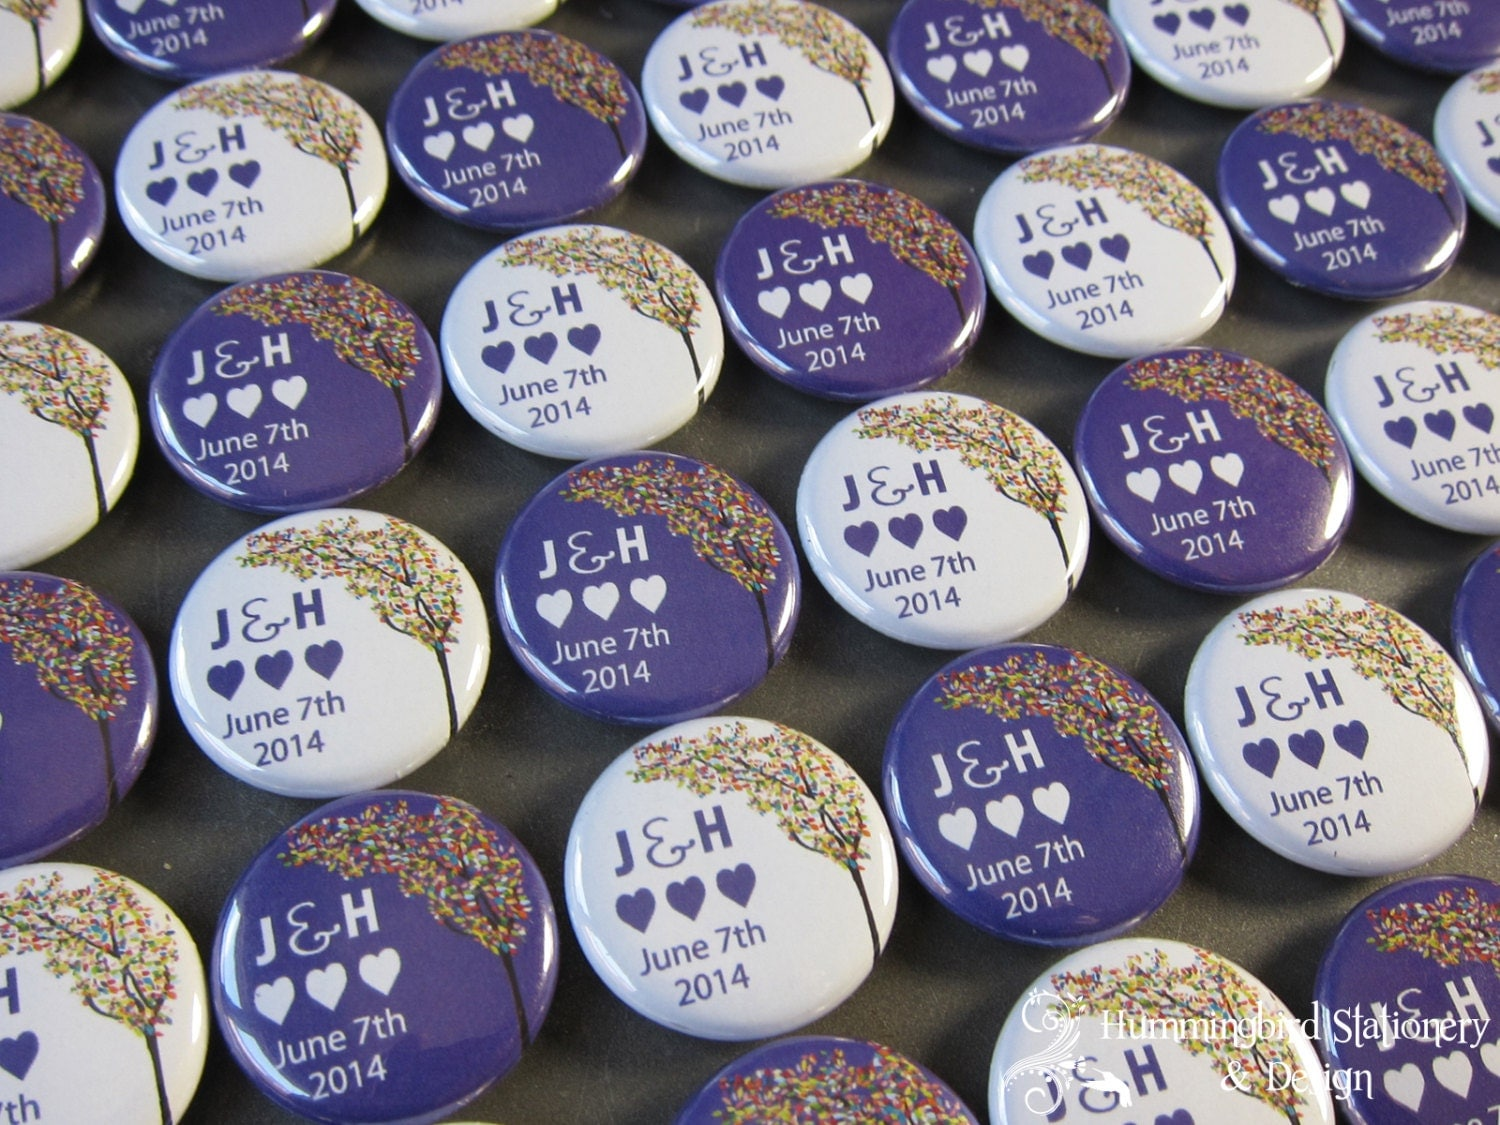 inch custom button pins or magnets set of 25 wedding favors party